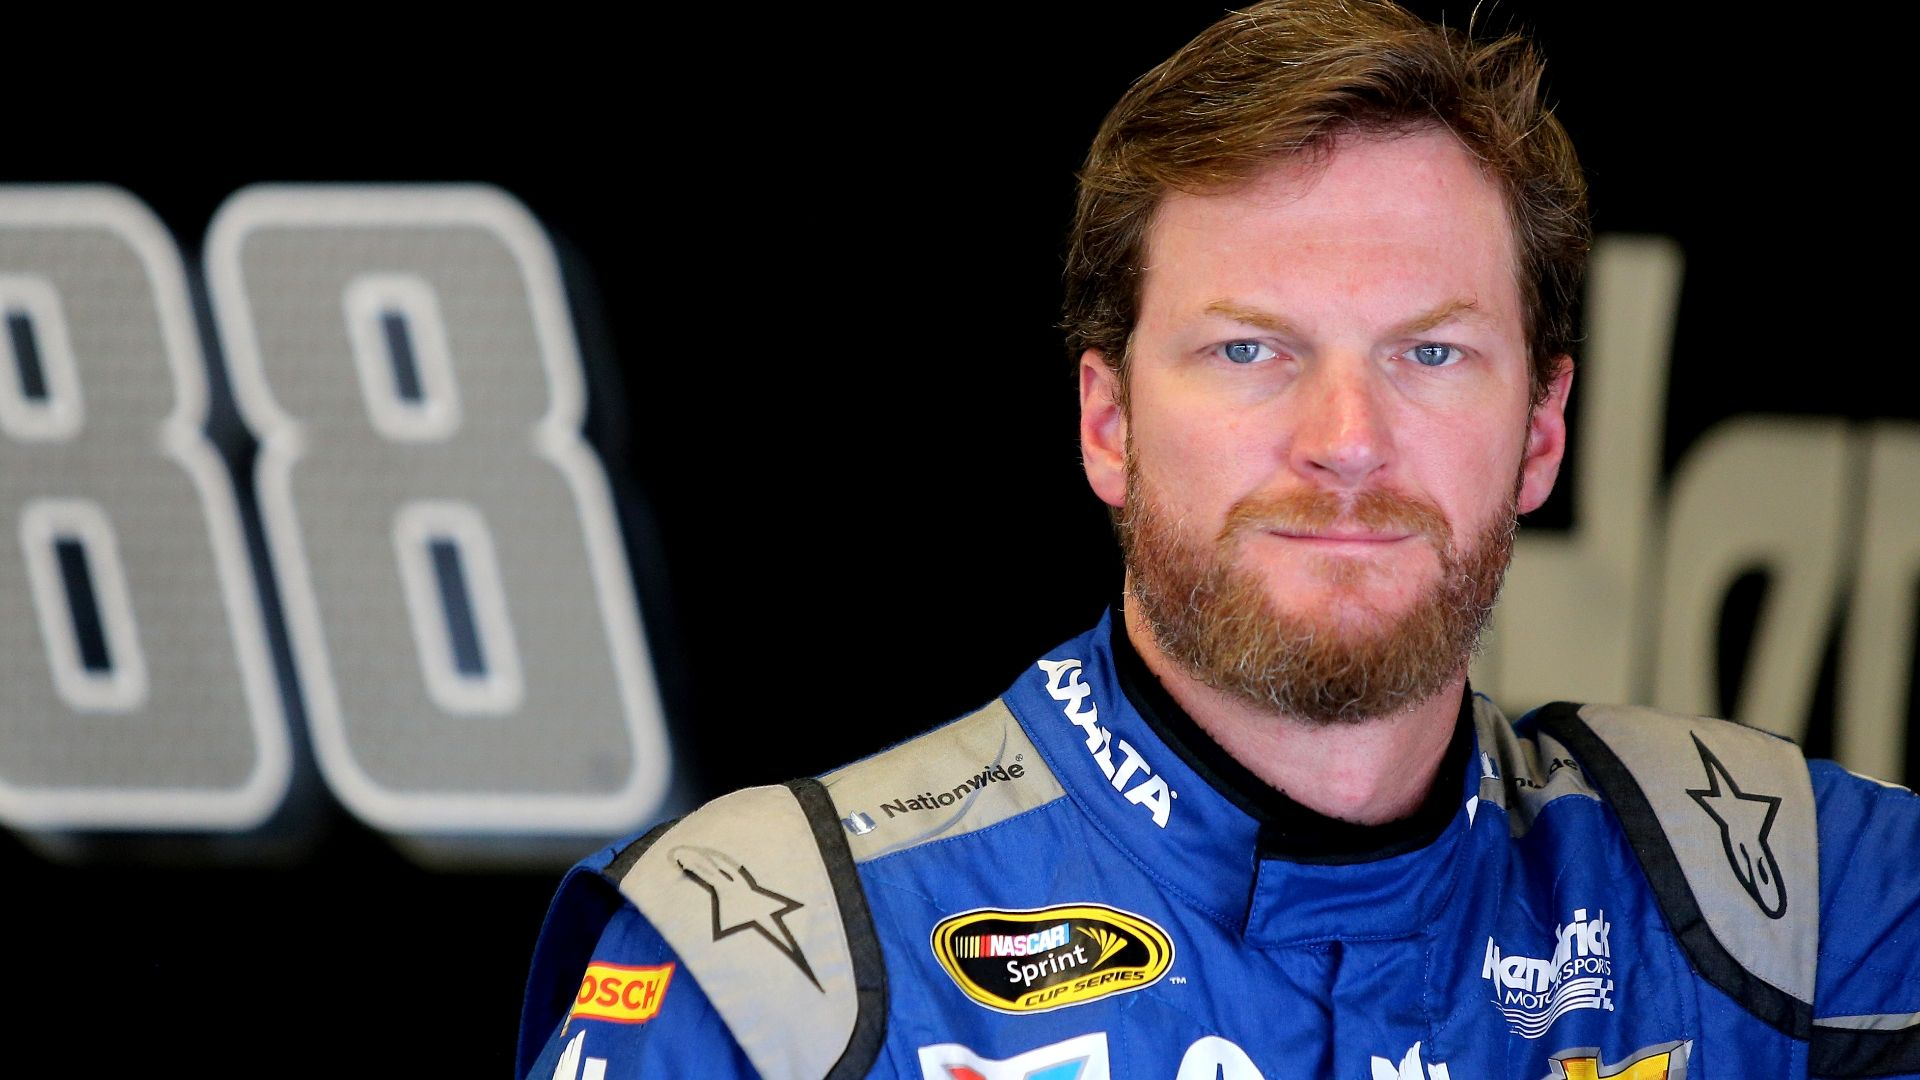 https://secure.espncdn.com/combiner/i?img=/media/motion/2016/0902/dm_160902_nascar_marty_smith_dale_jr_out/dm_160902_nascar_marty_smith_dale_jr_out.jpg